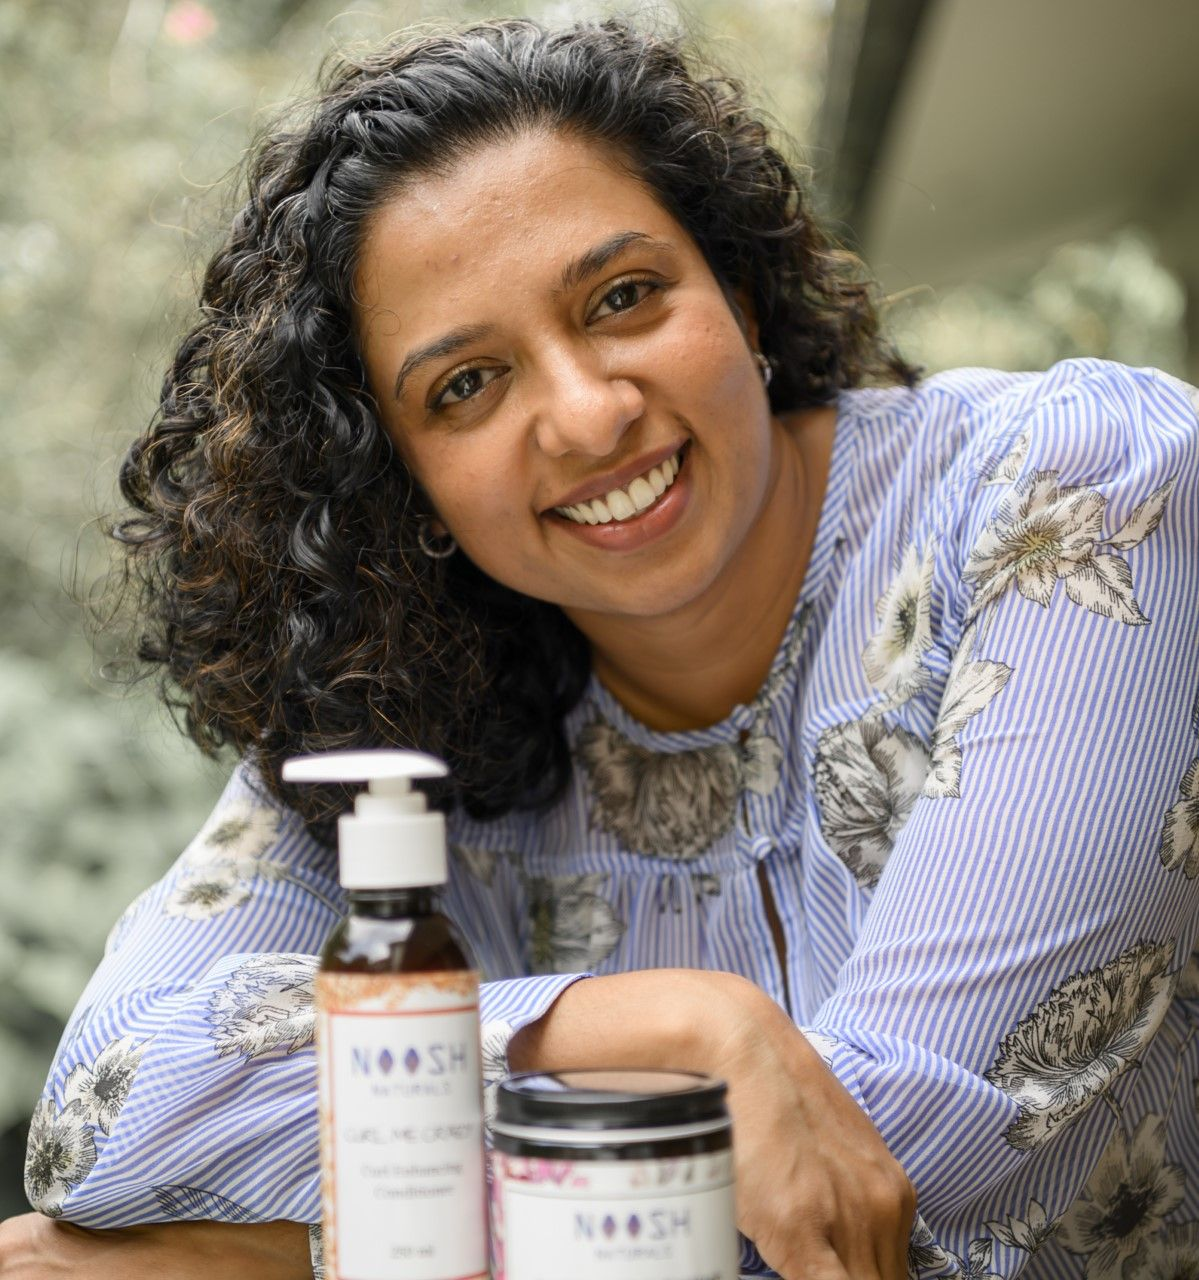 Noosh Naturals: How Anusha Nair's Quest For Better Skincare Birthed An Online Business Celebrating Nature's Goodness